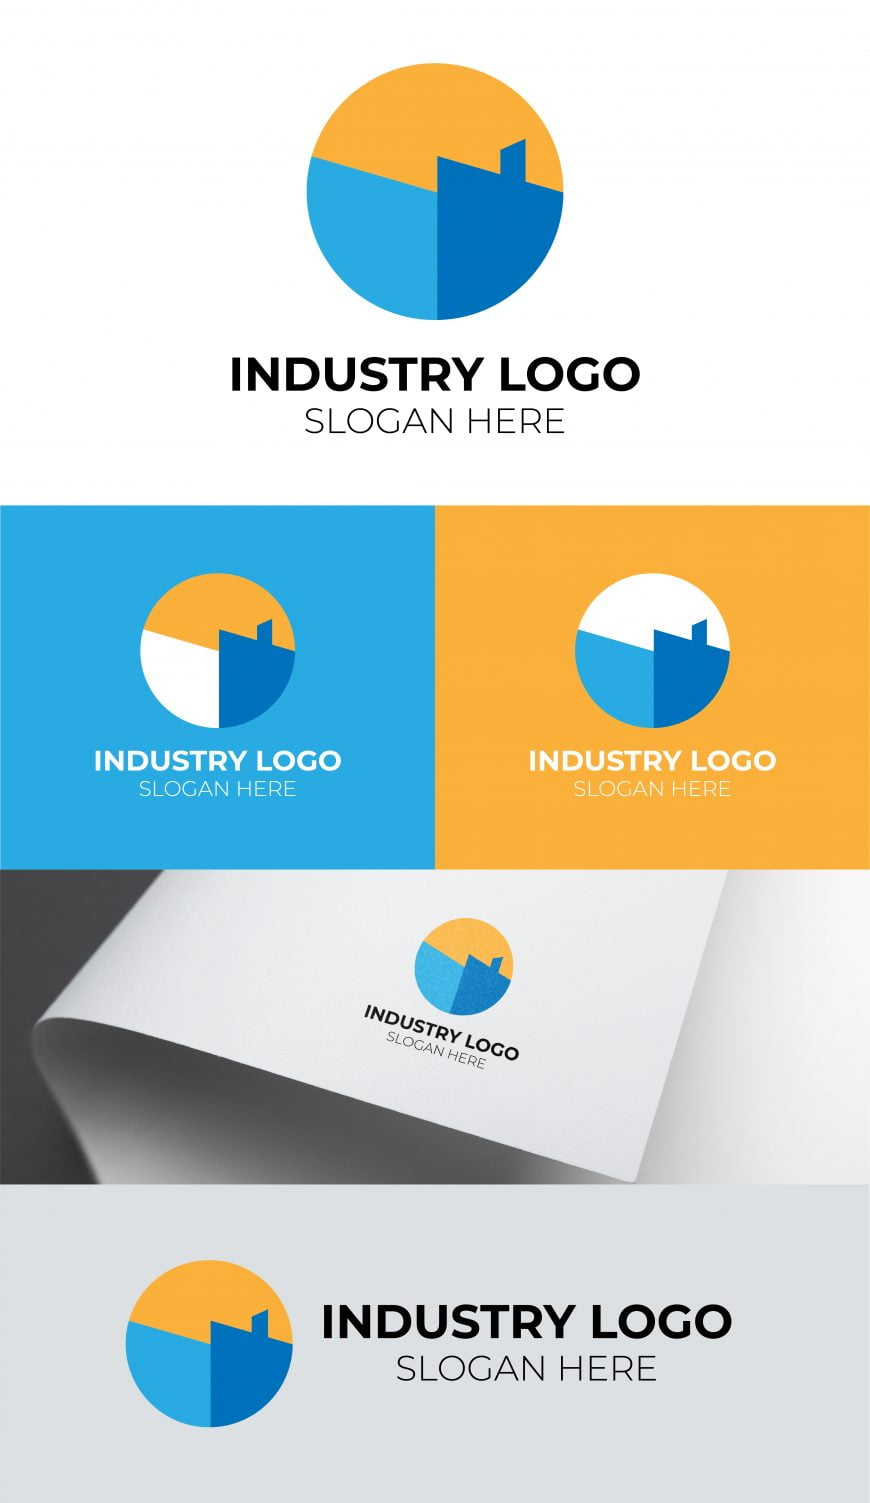 FREE INDUSTRY LOGO TEMPLATE